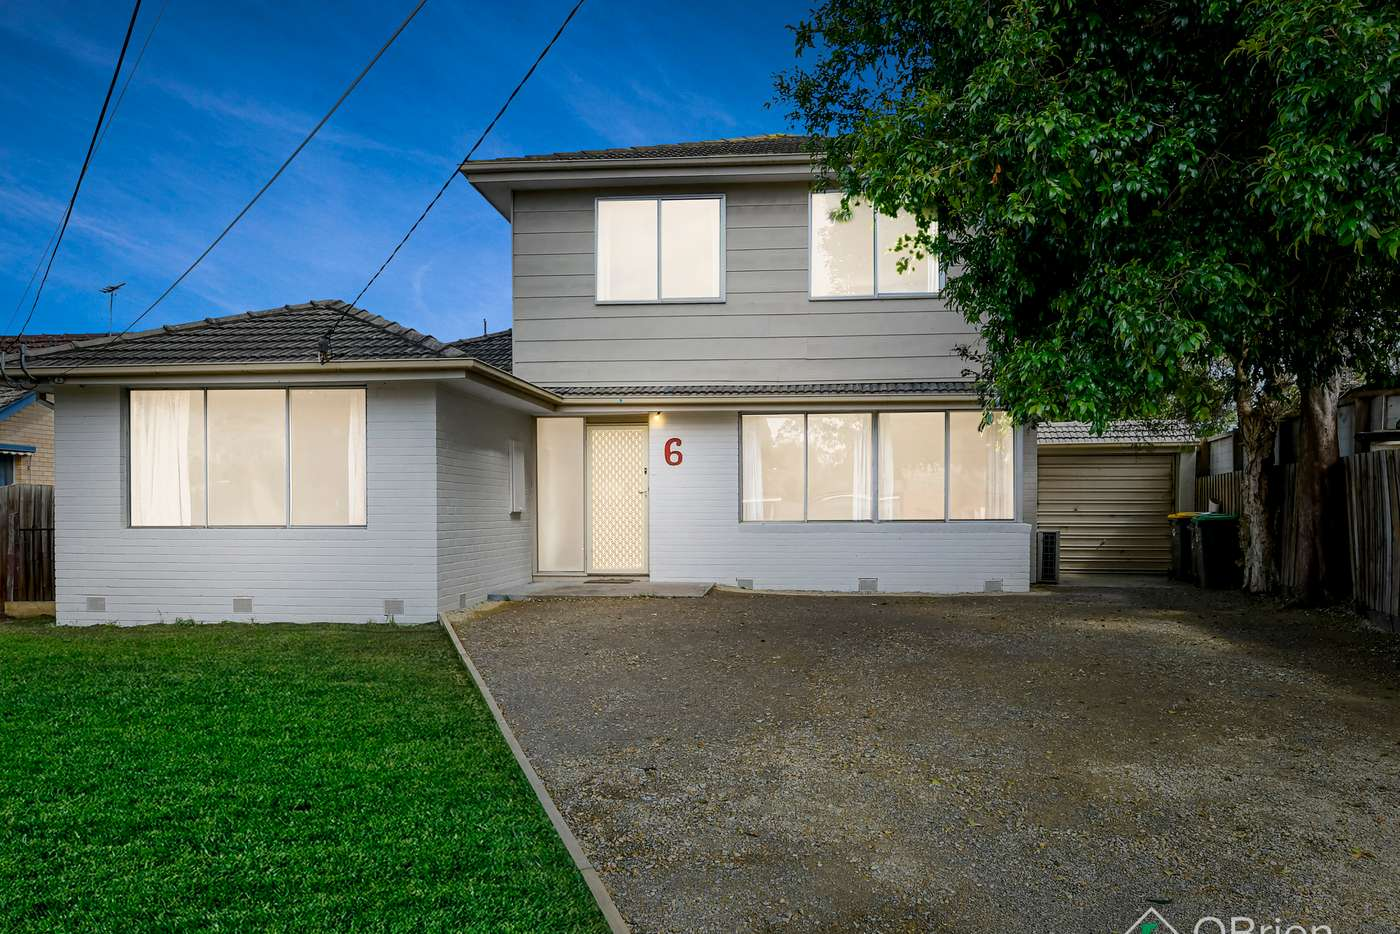 Main view of Homely house listing, 6 Alexander Crescent, Frankston VIC 3199